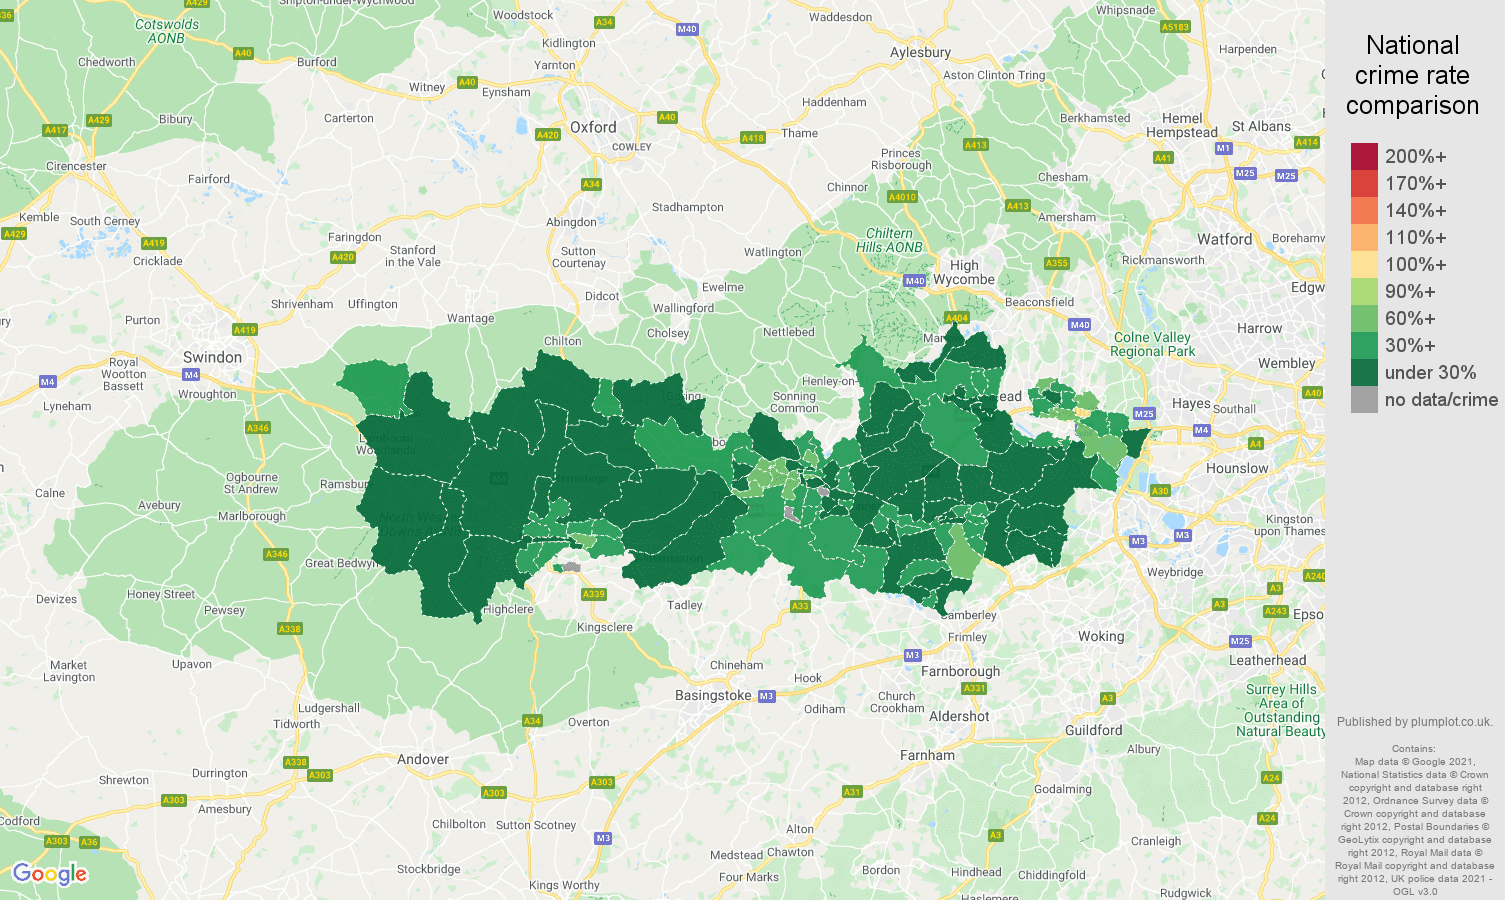 Berkshire antisocial behaviour crime rate comparison map